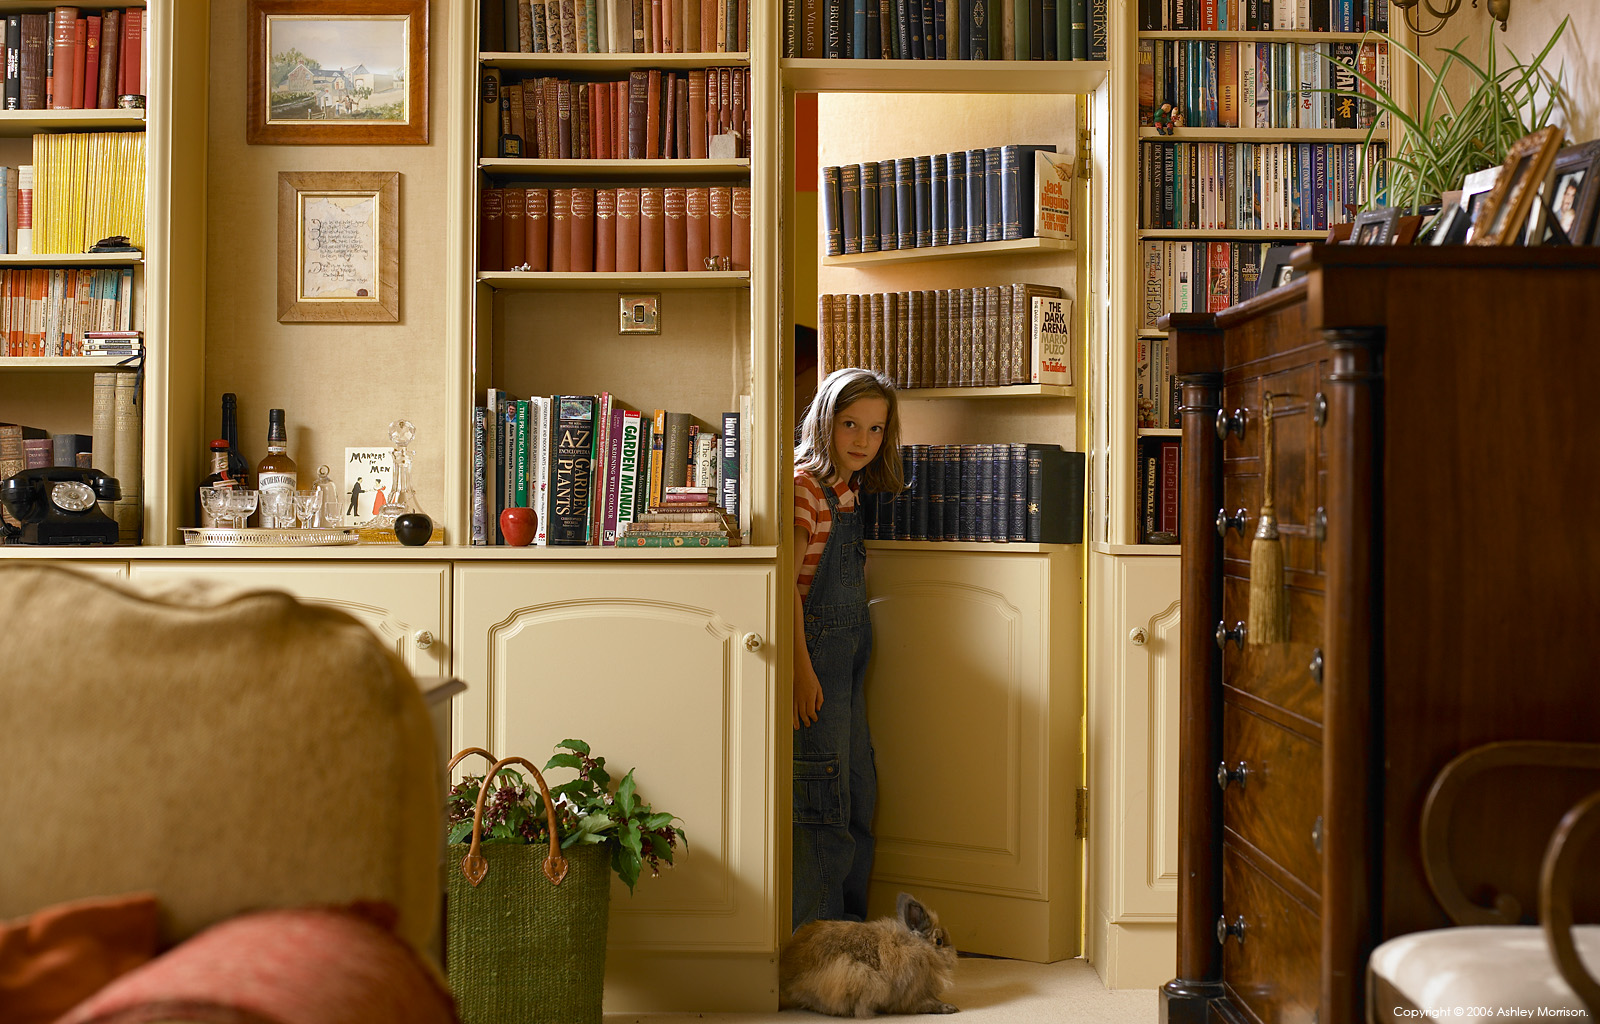 Libby & Peter Johnston's daughter with her rabbit coming out for the secert door in the sitting room of their 200-year-old stone cottage located near Belfast by Ashley Morrison.